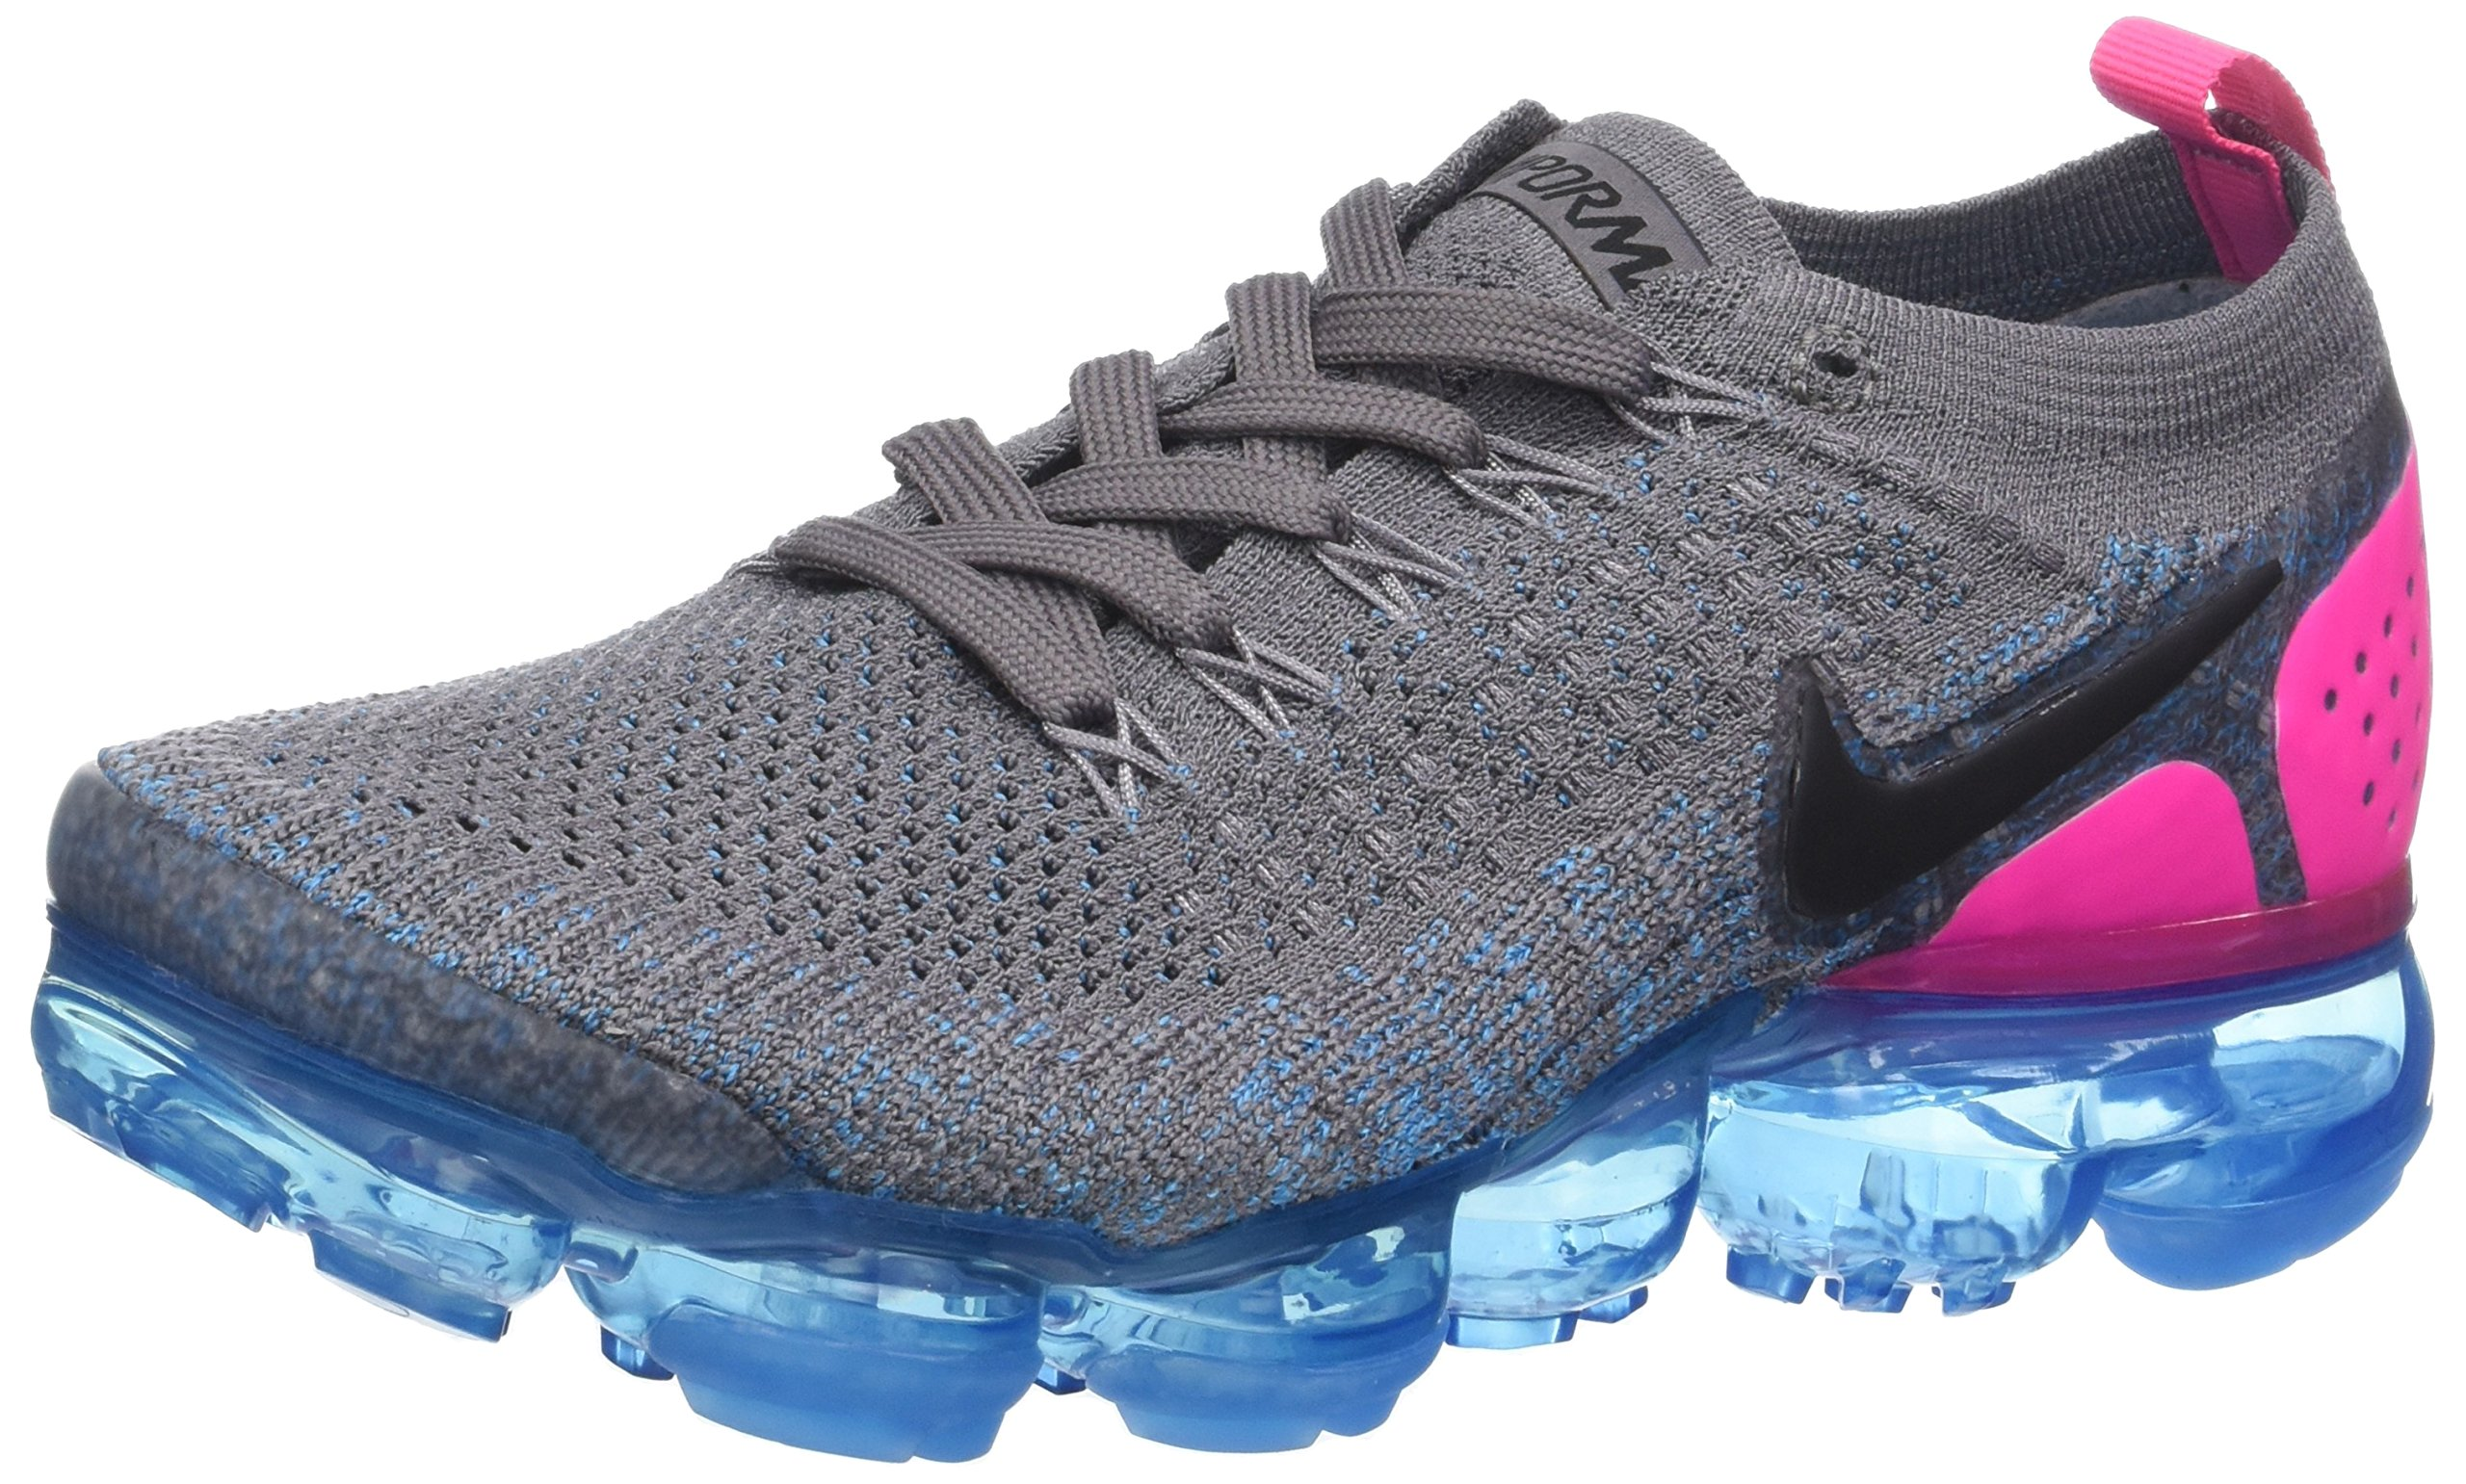 official photos c2fd5 dd628 Nike Women's W Air Vapormax Flyknit 2 Competition Running Shoes